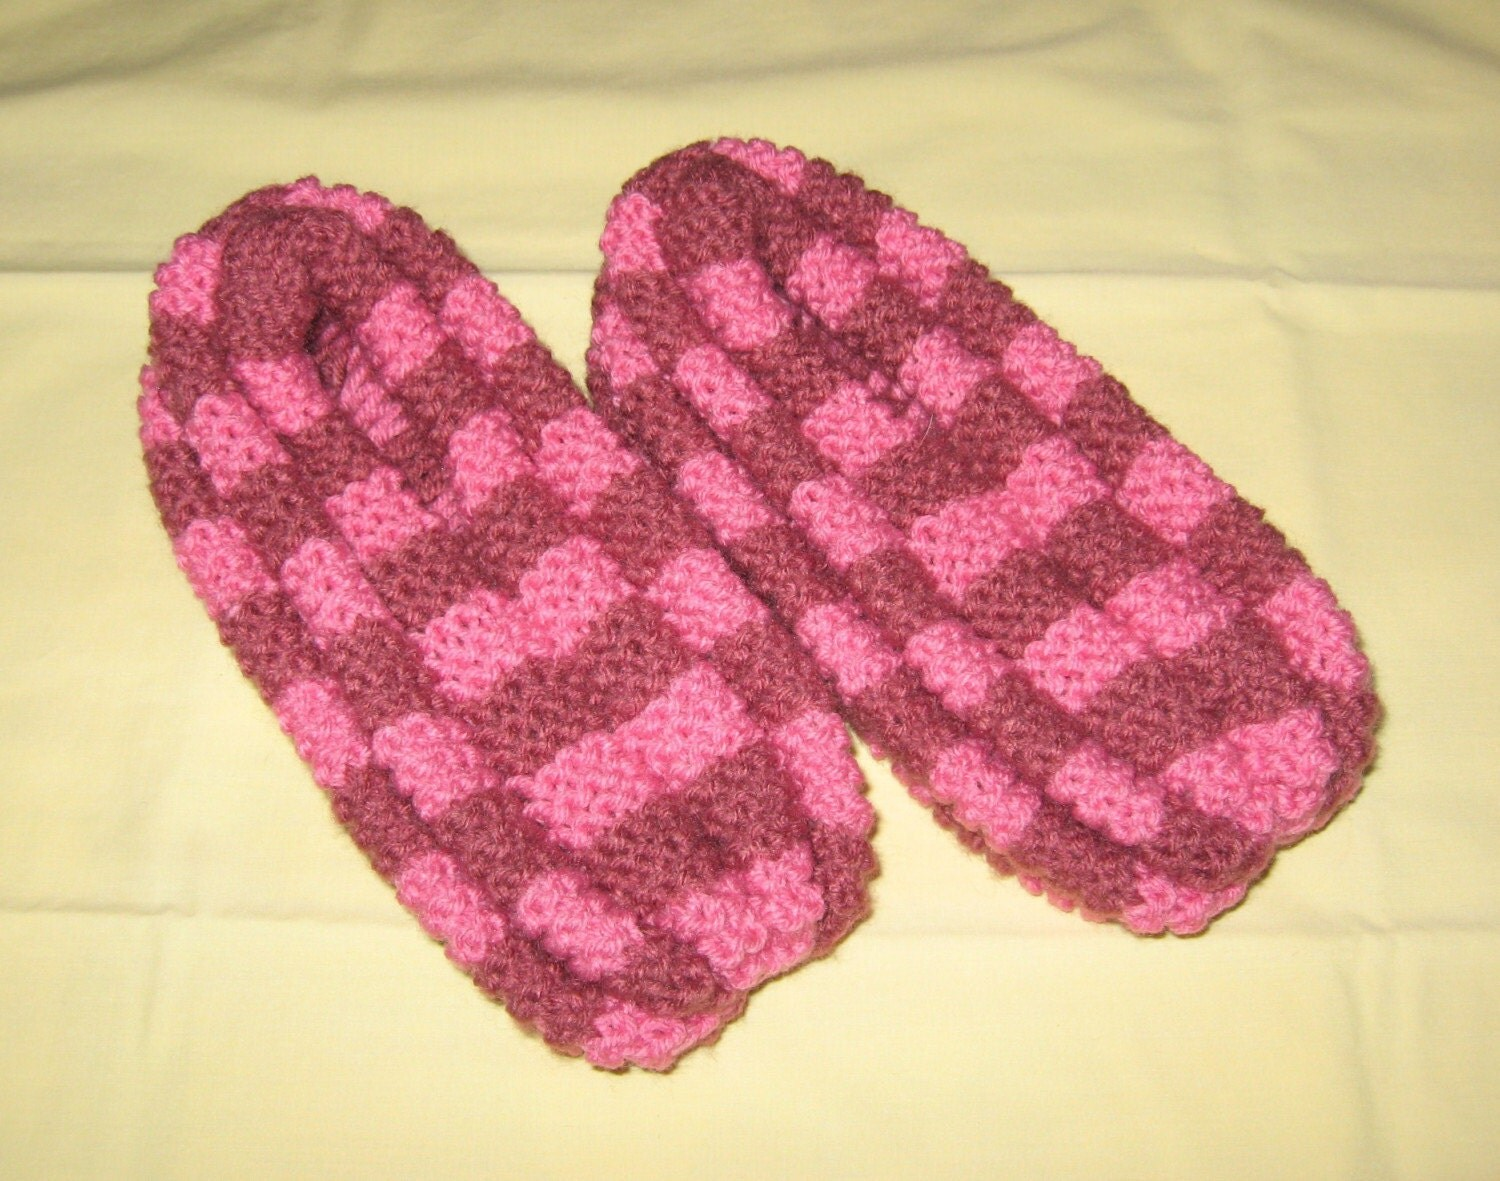 Knitting Pattern For Checkerboard Slippers : Checkerboard slippers by Bneez on Etsy